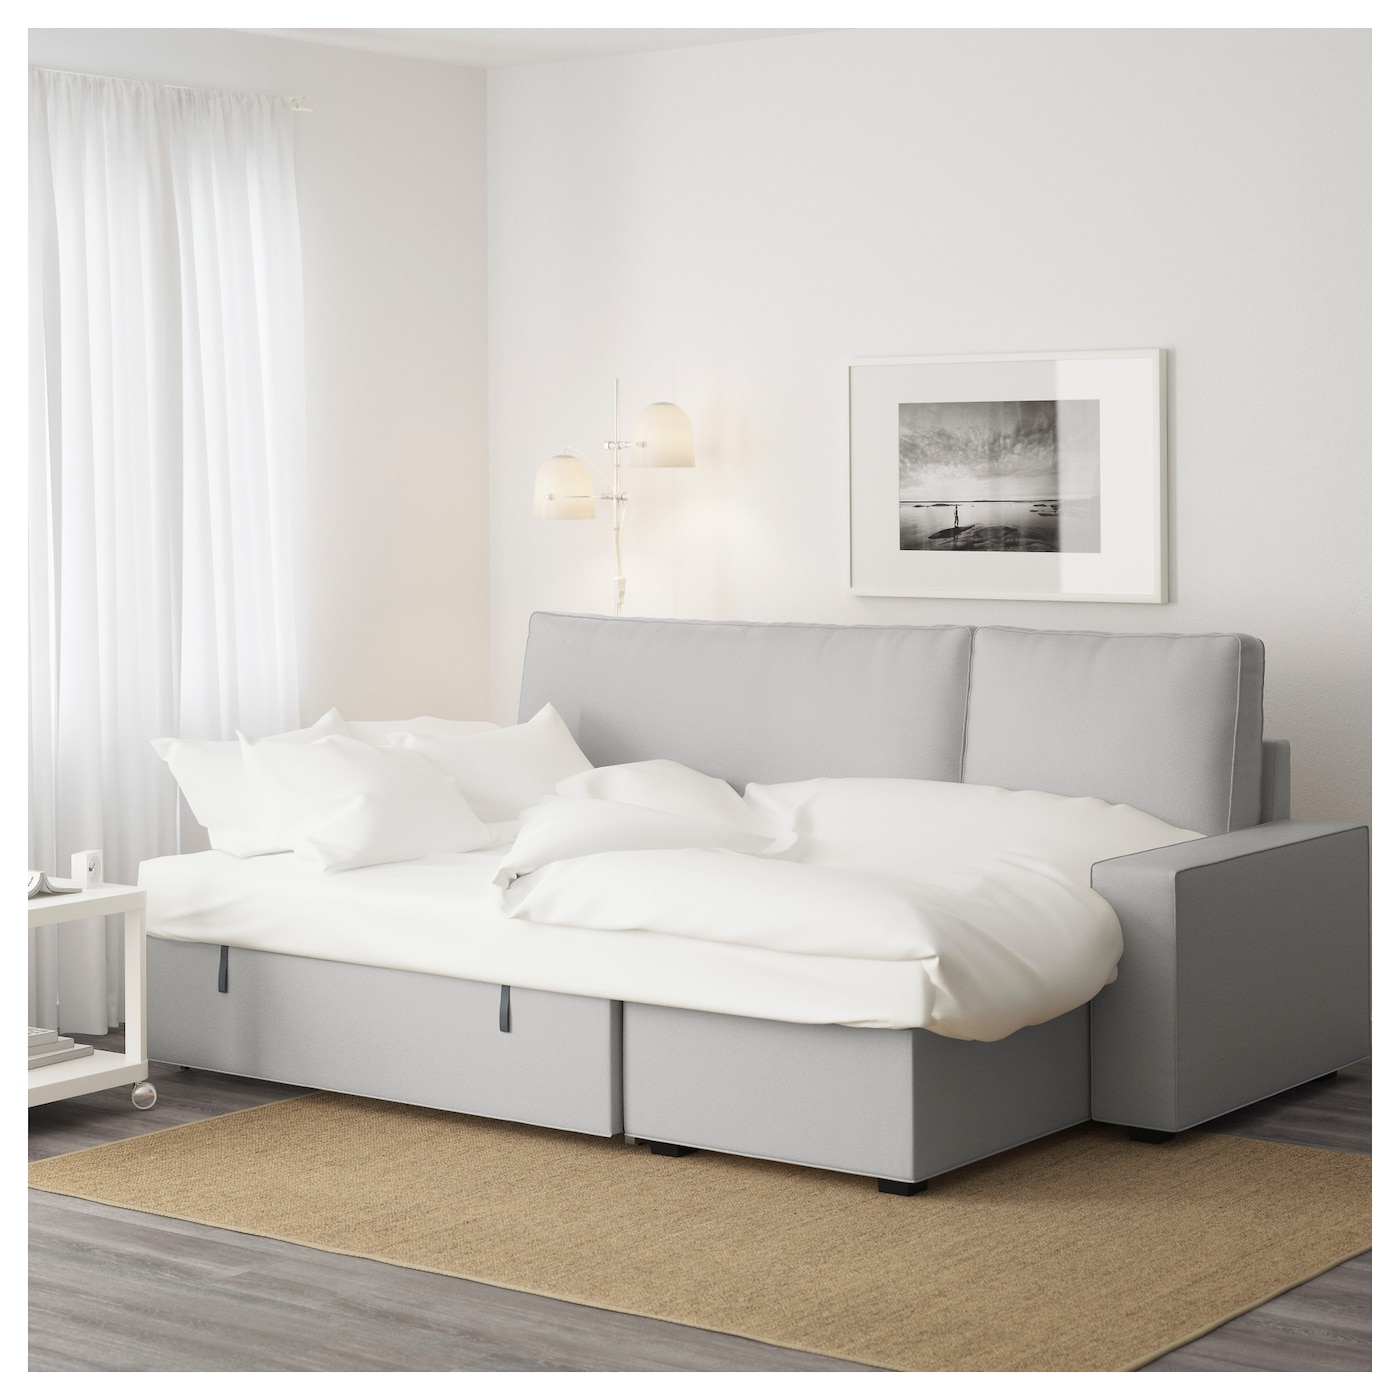 Vilasund sofa bed with chaise longue ramna light grey ikea for Chaise longue bed